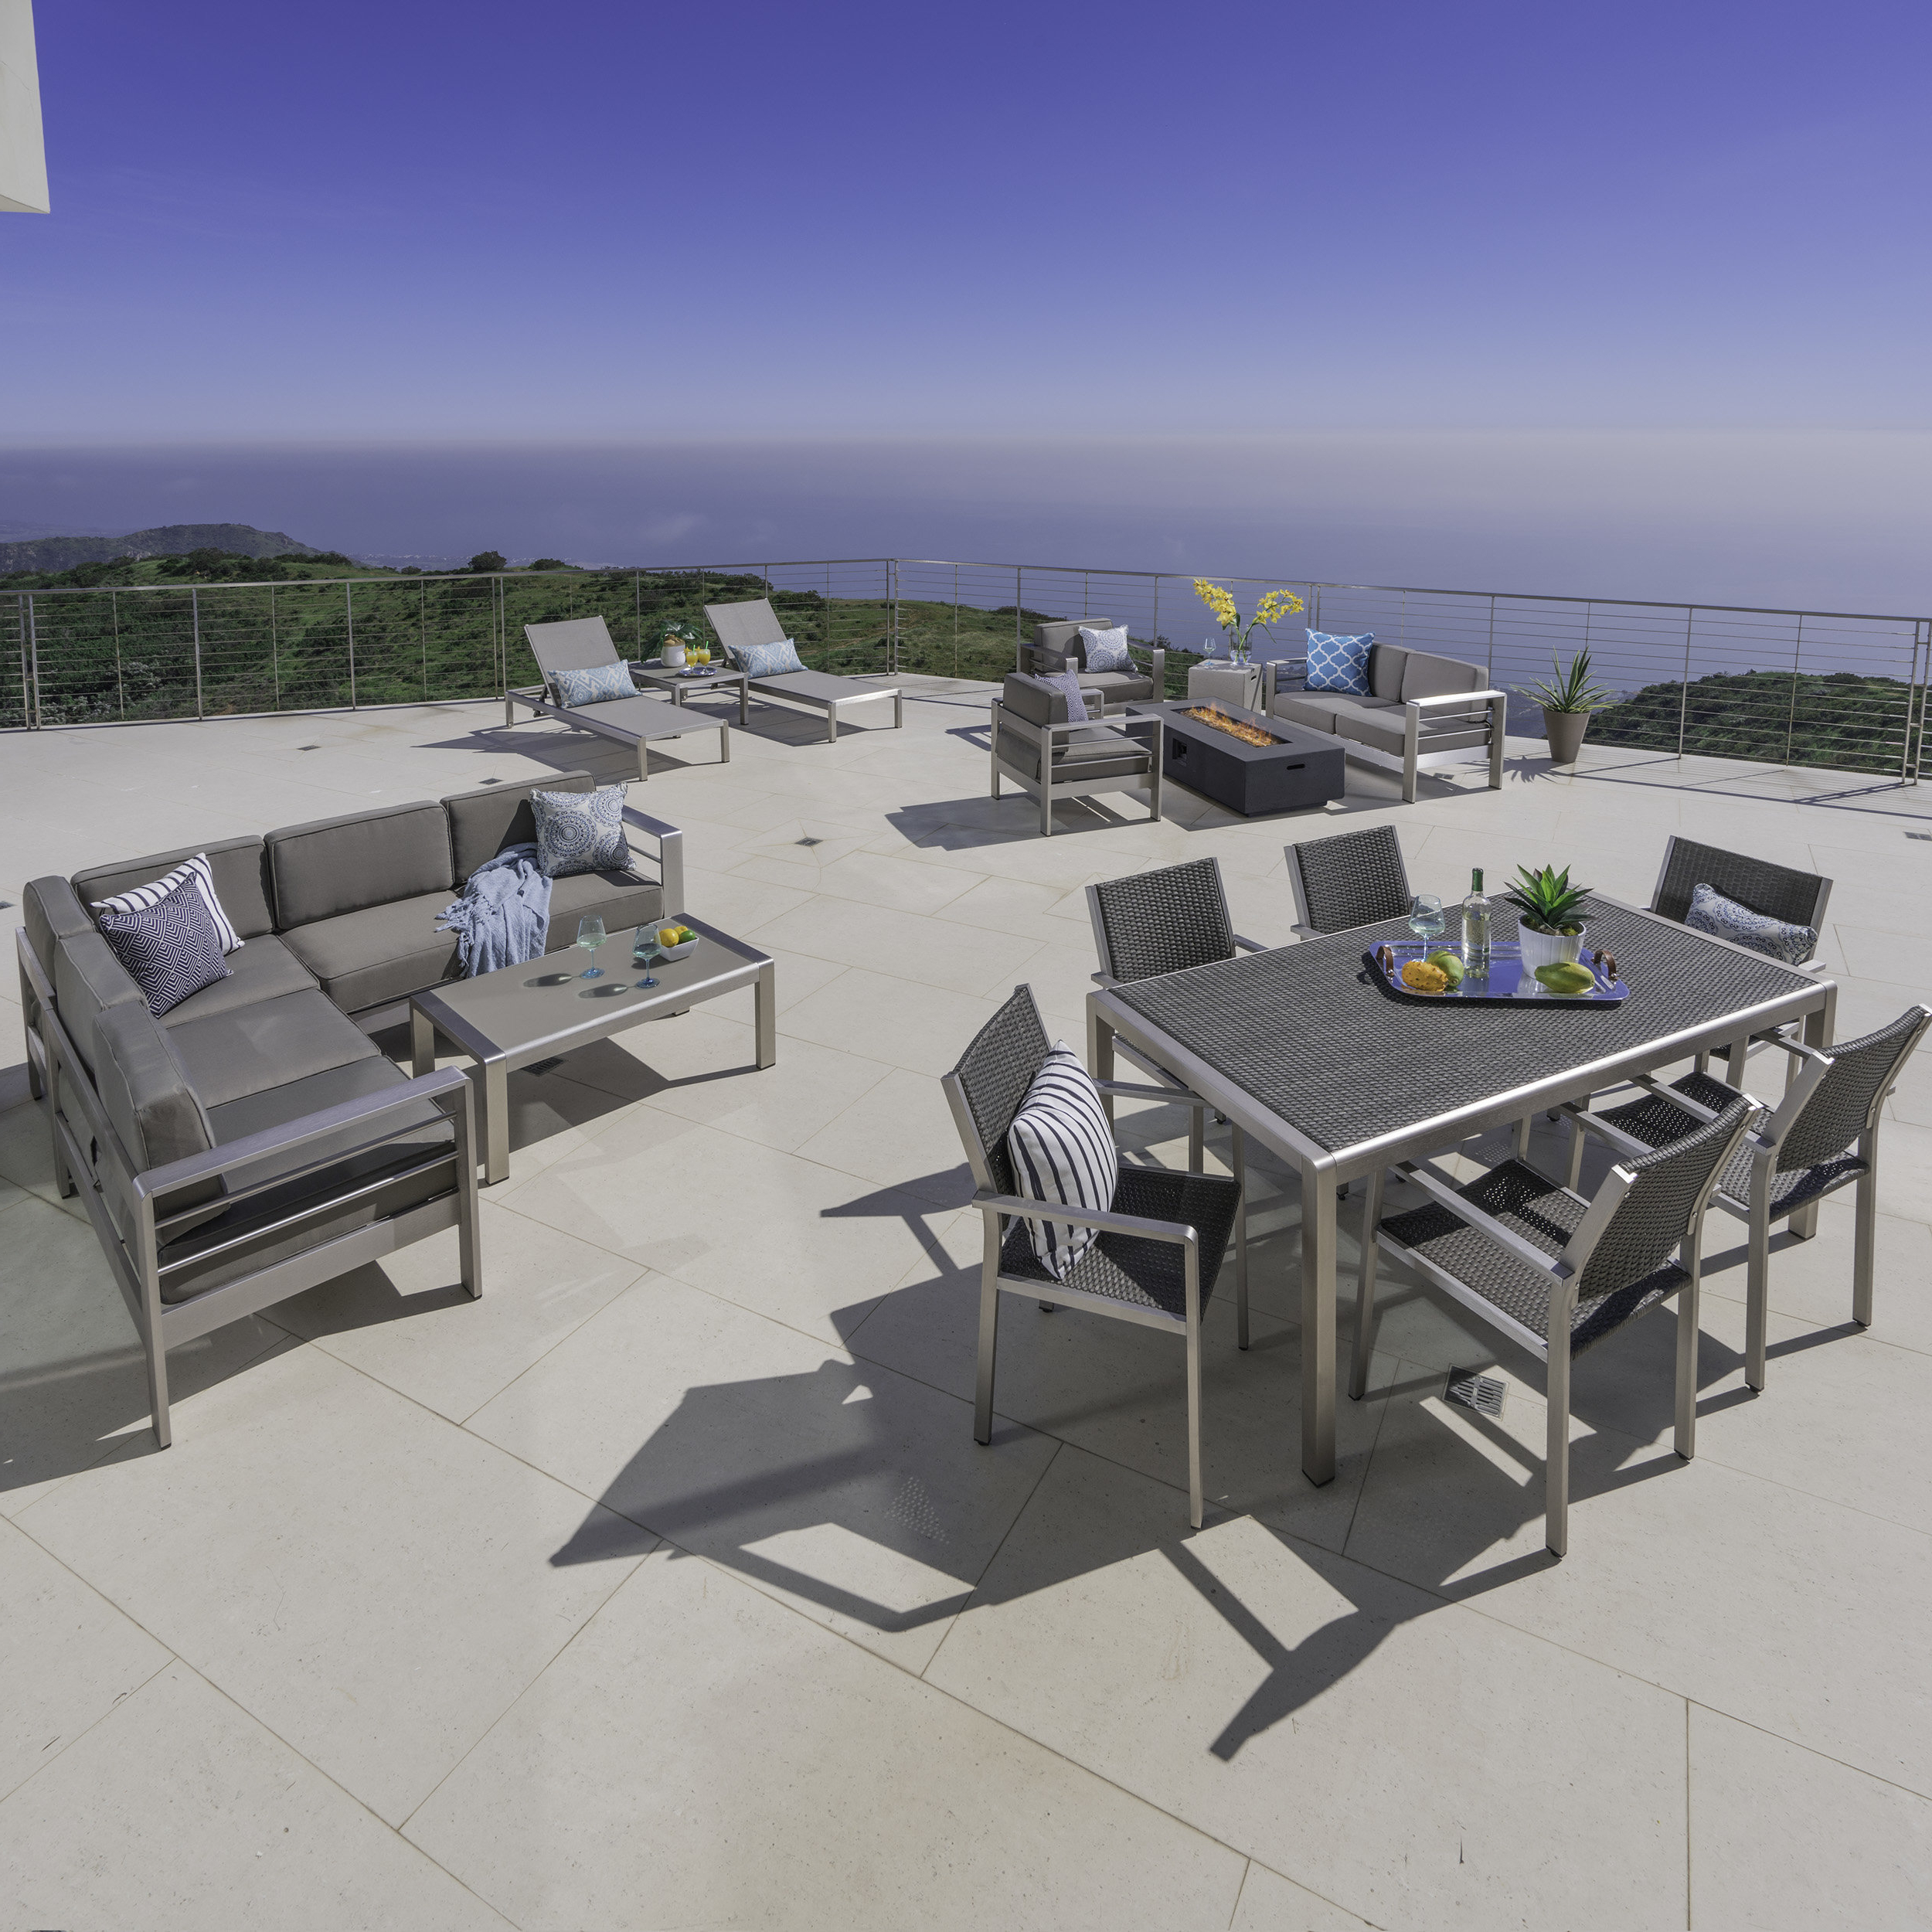 Popular Royalston Patio Sofas With Cushions For Royalston 17 Piece Conversation Set With Cushions (View 7 of 20)